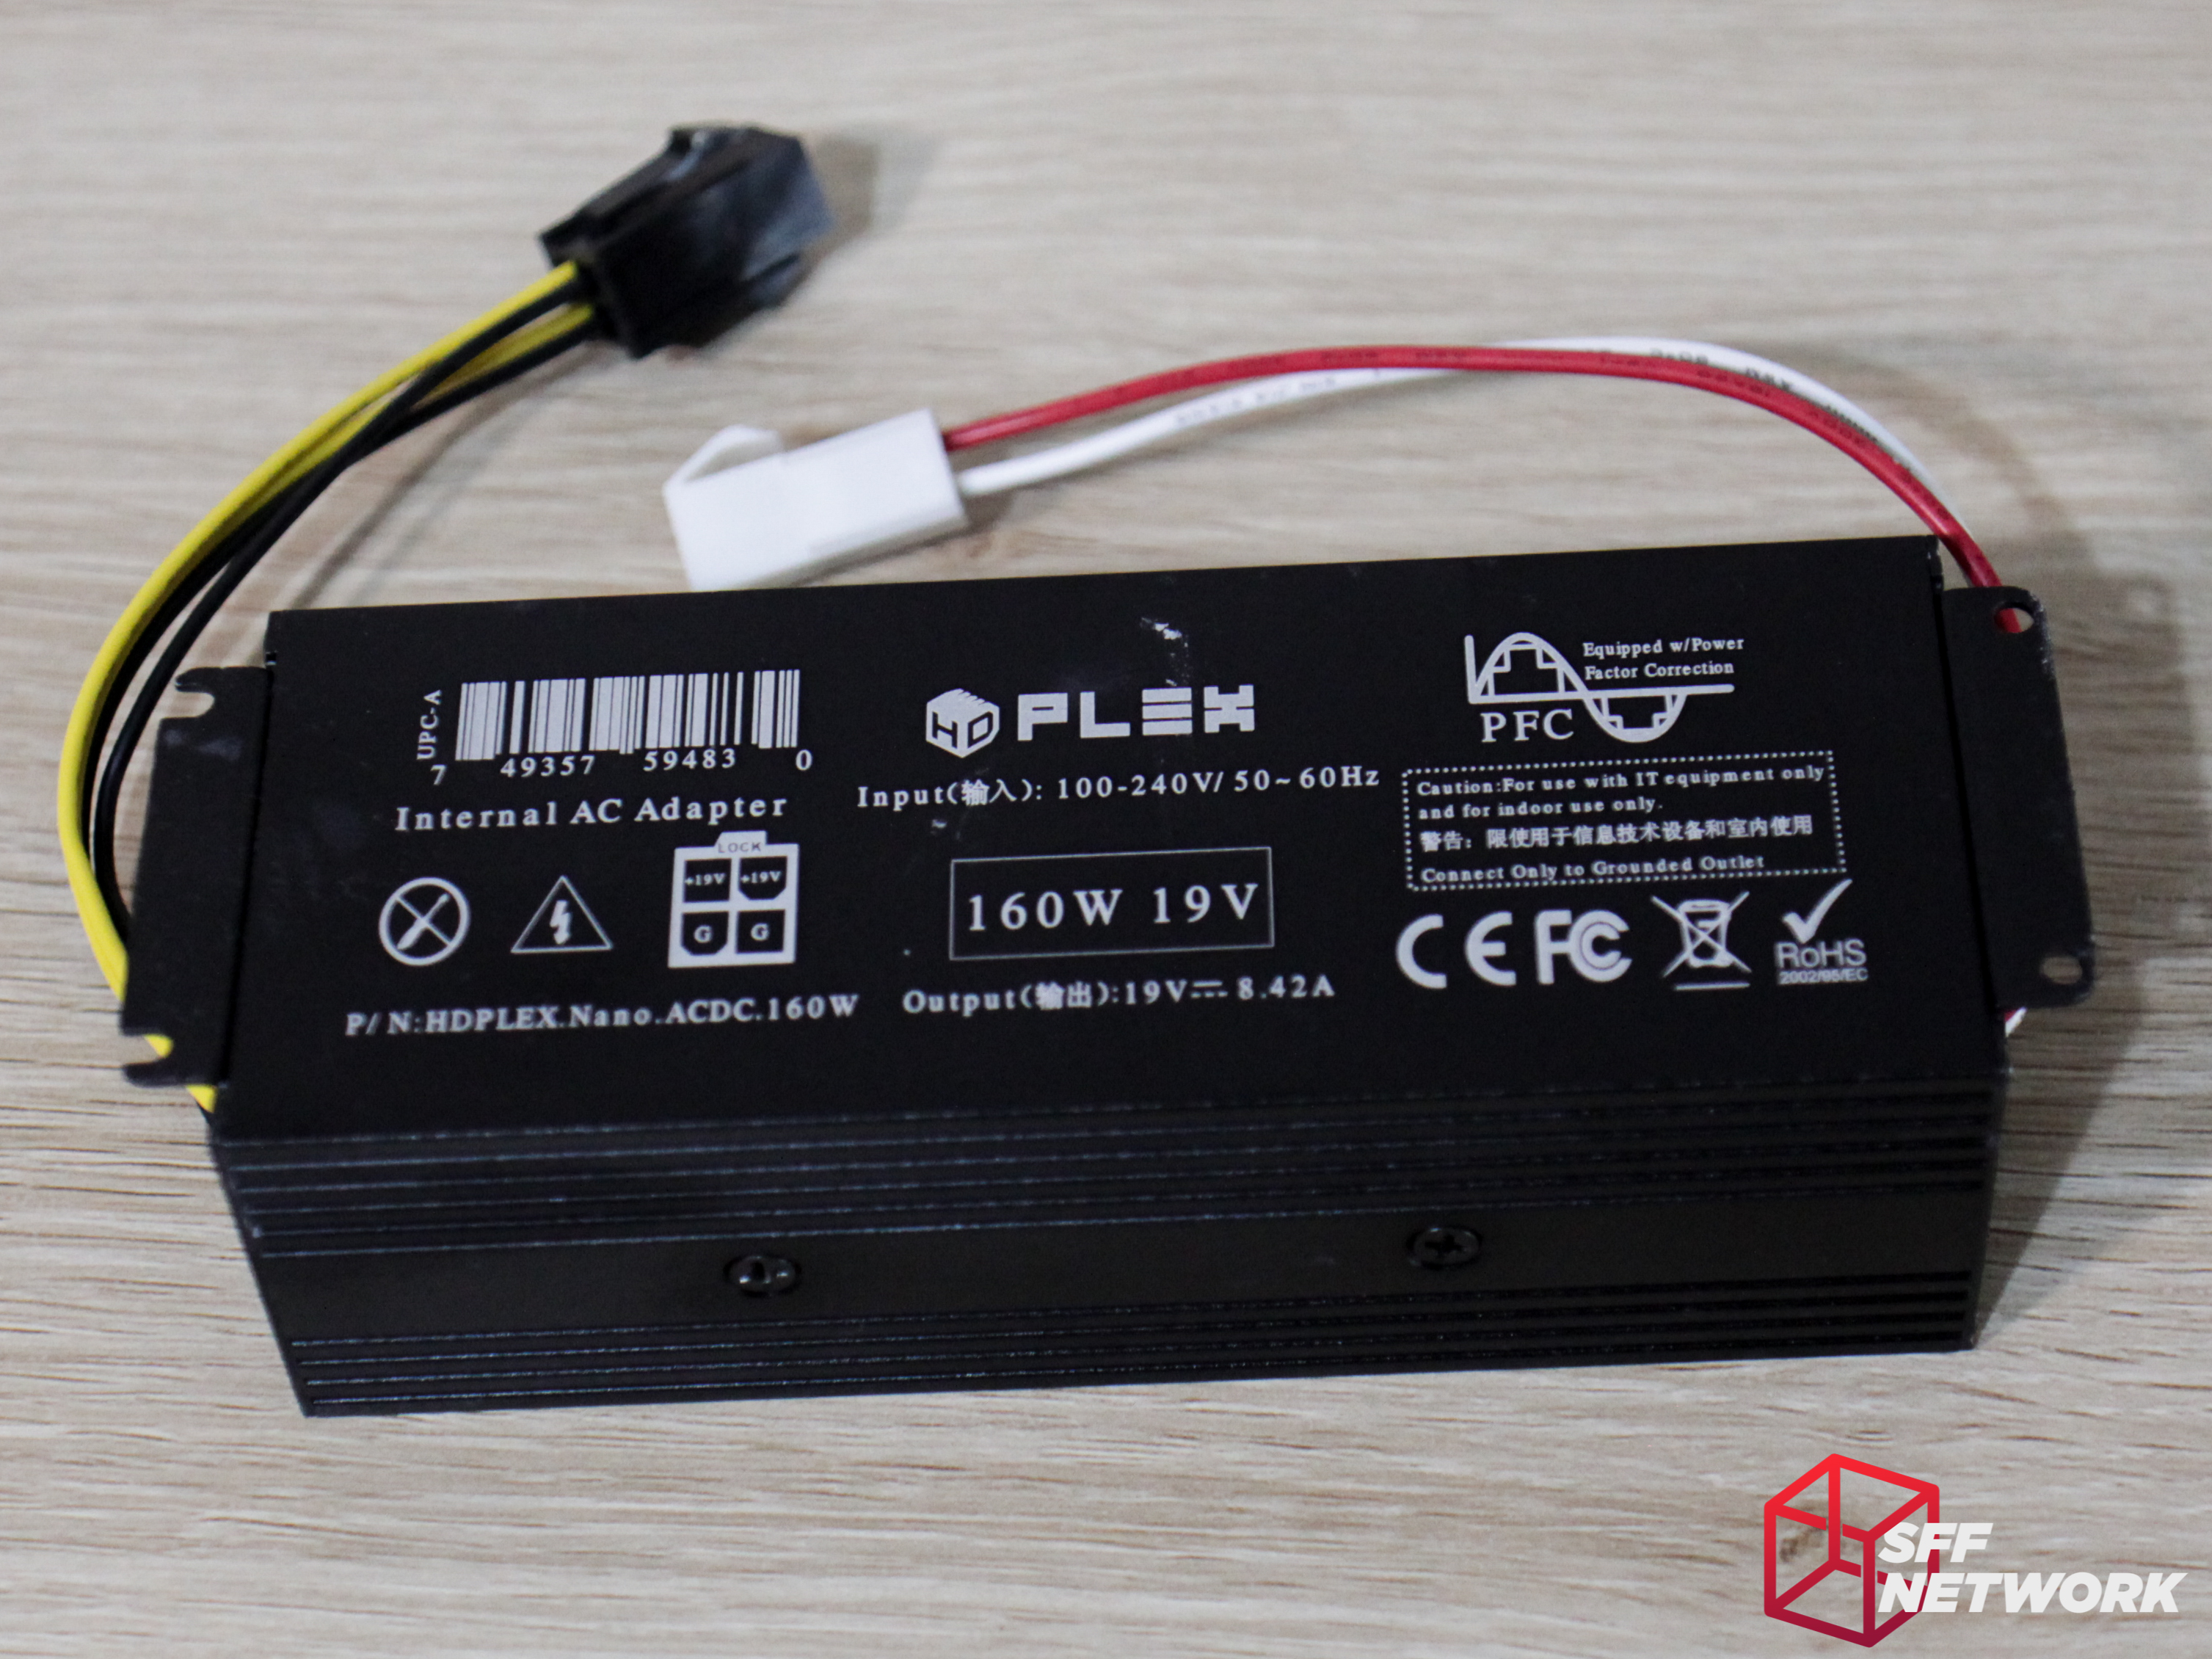 HDPlex AC-DC 160w and 300w - A Powerful Solution? - Small Form ...